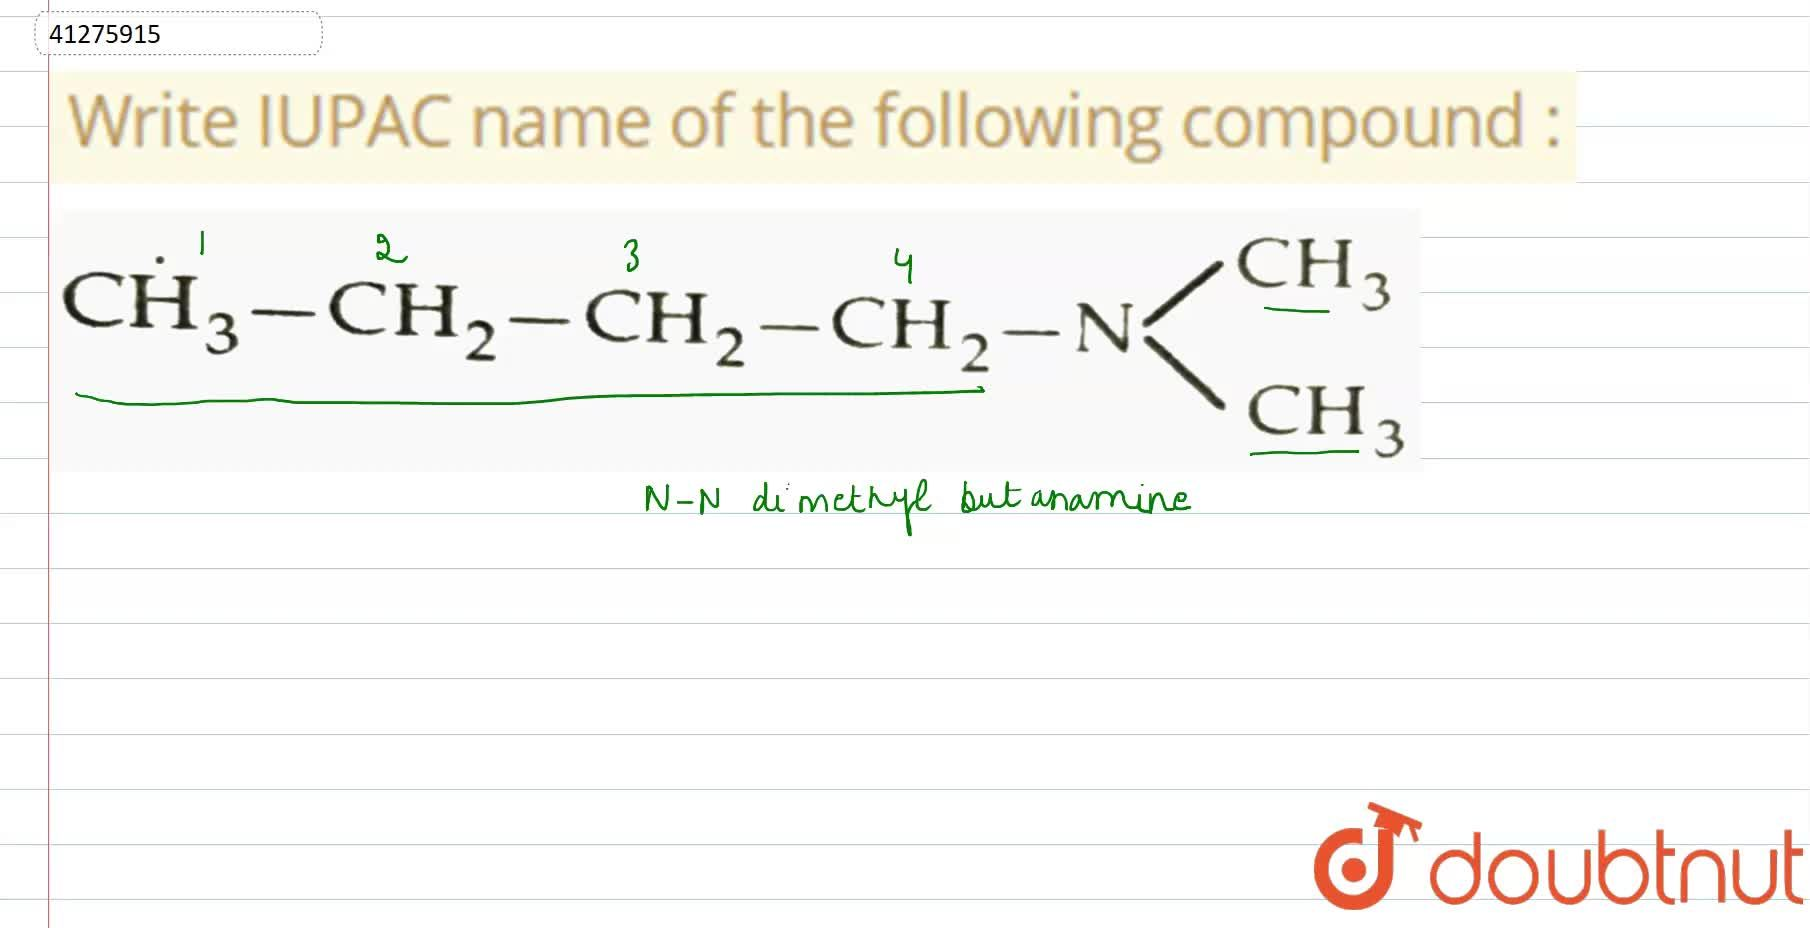 Solution for Write IUPAC name of the following compound :